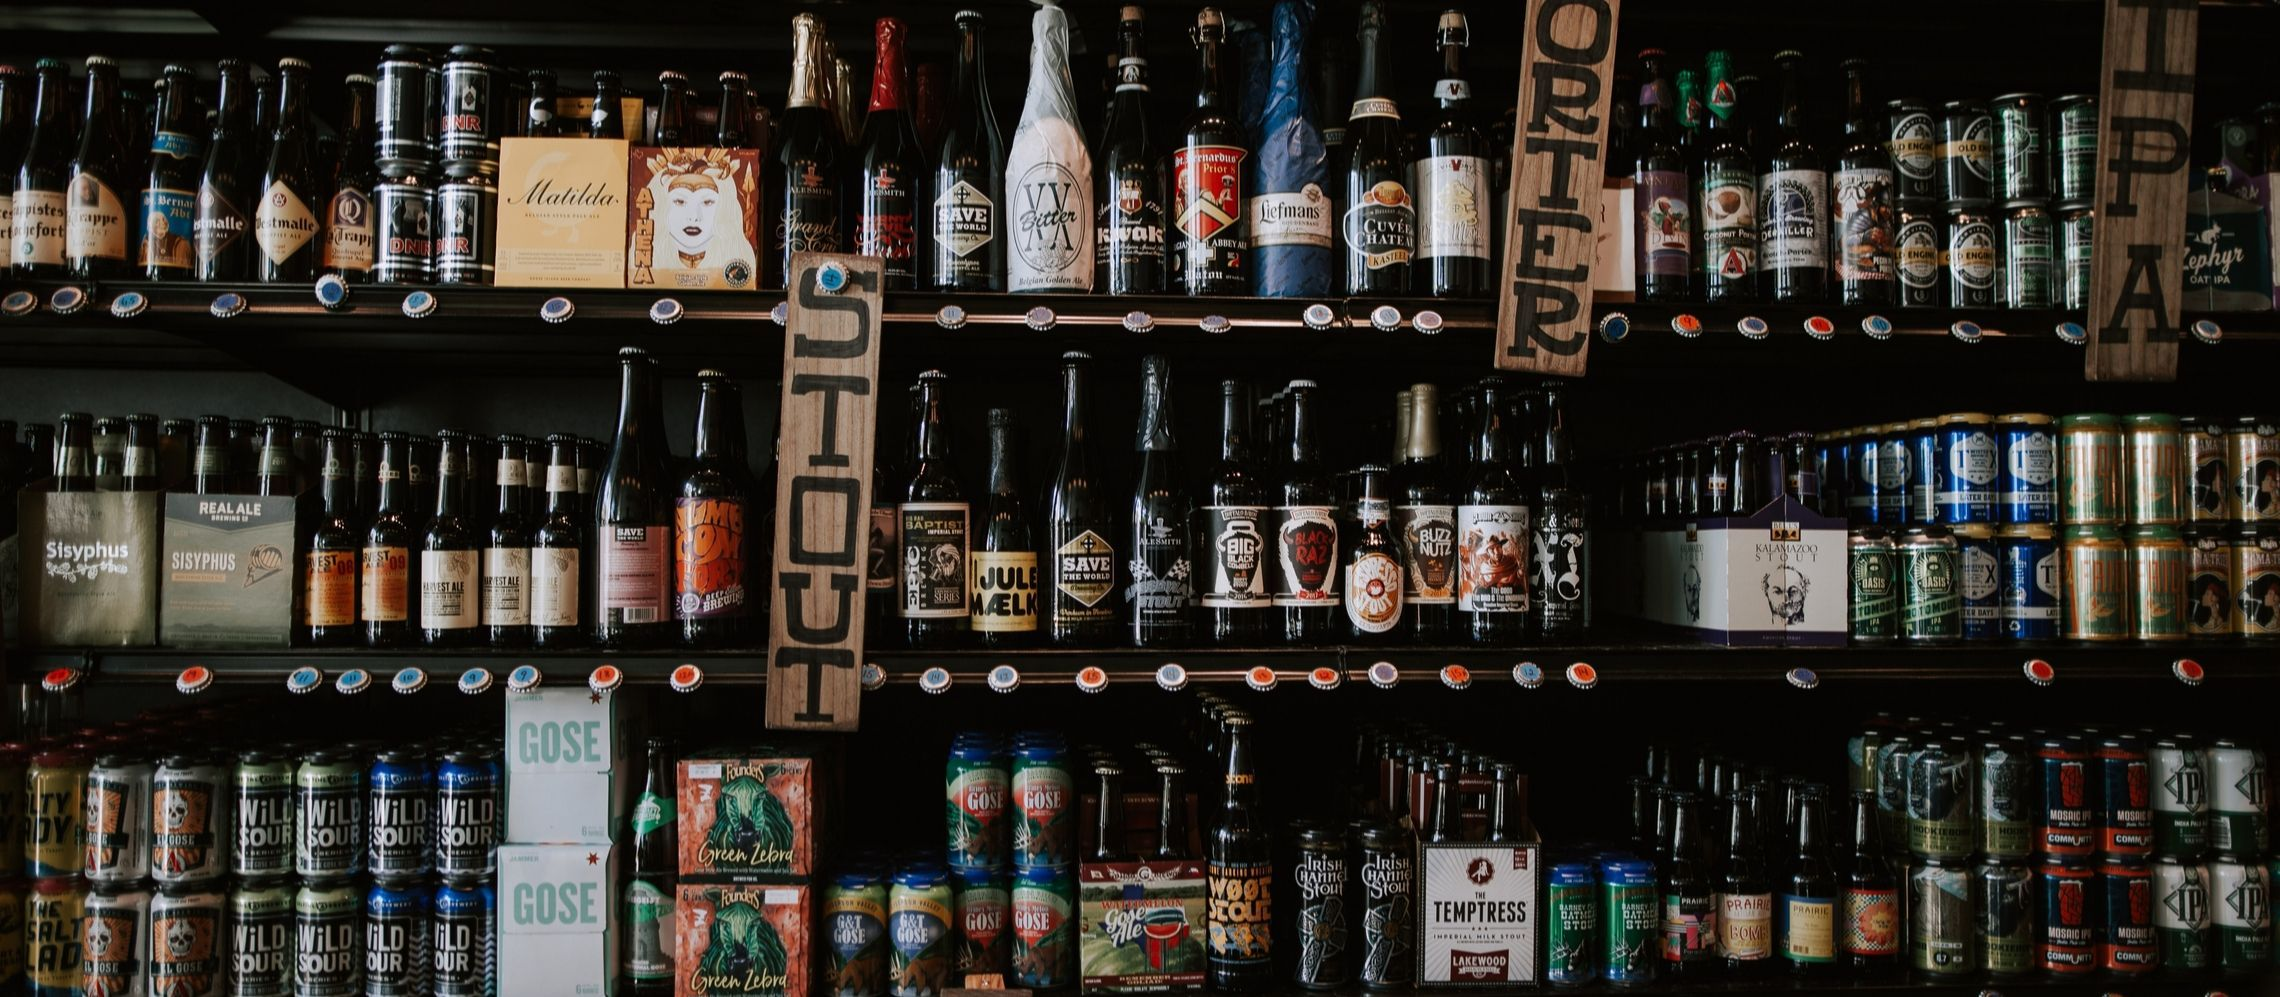 Photo for: How to Find a Beer Importer in the UK in 2019